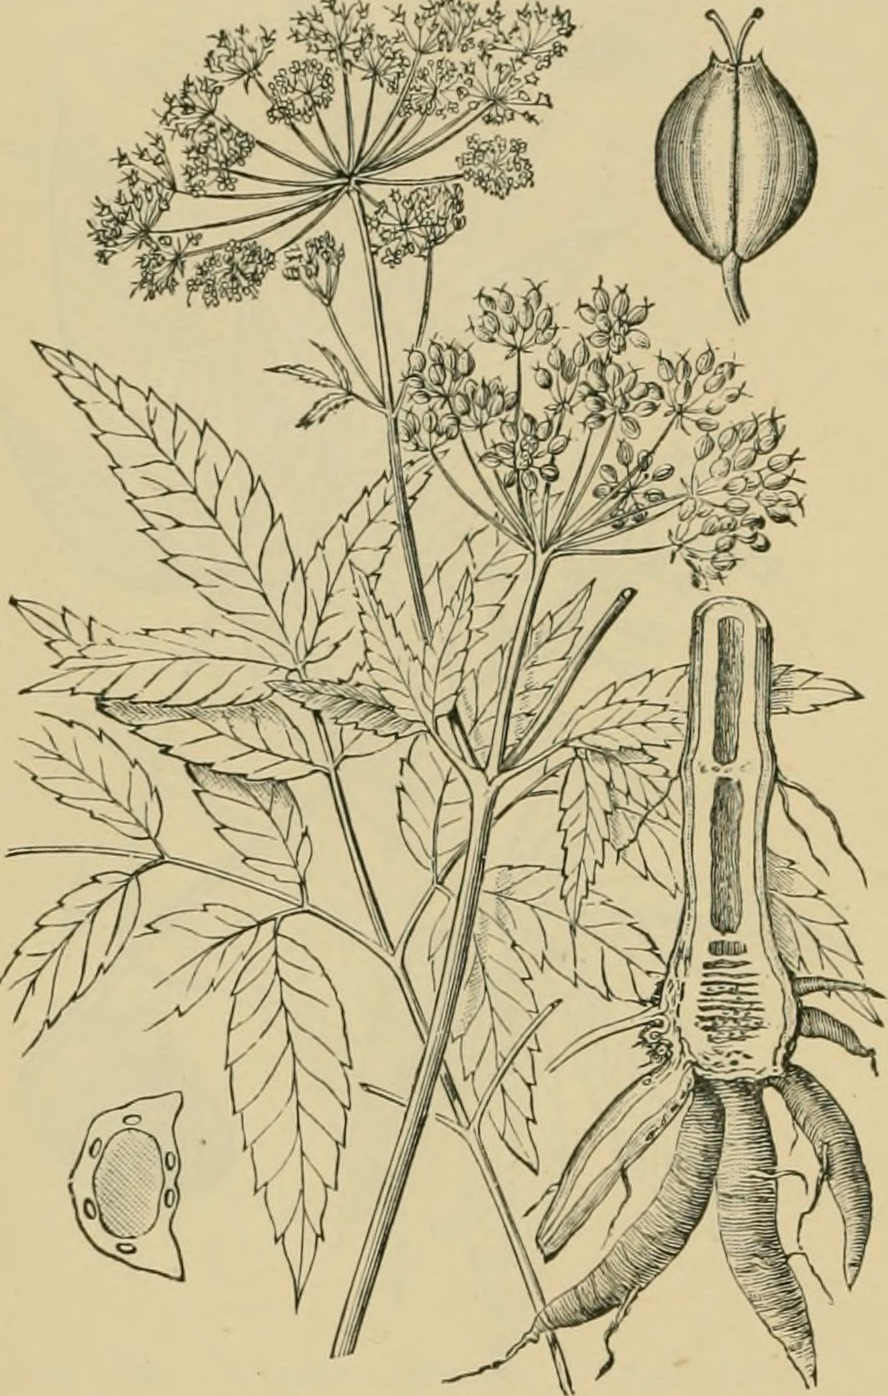 Water Hemlock, the most poisonous plant in North America